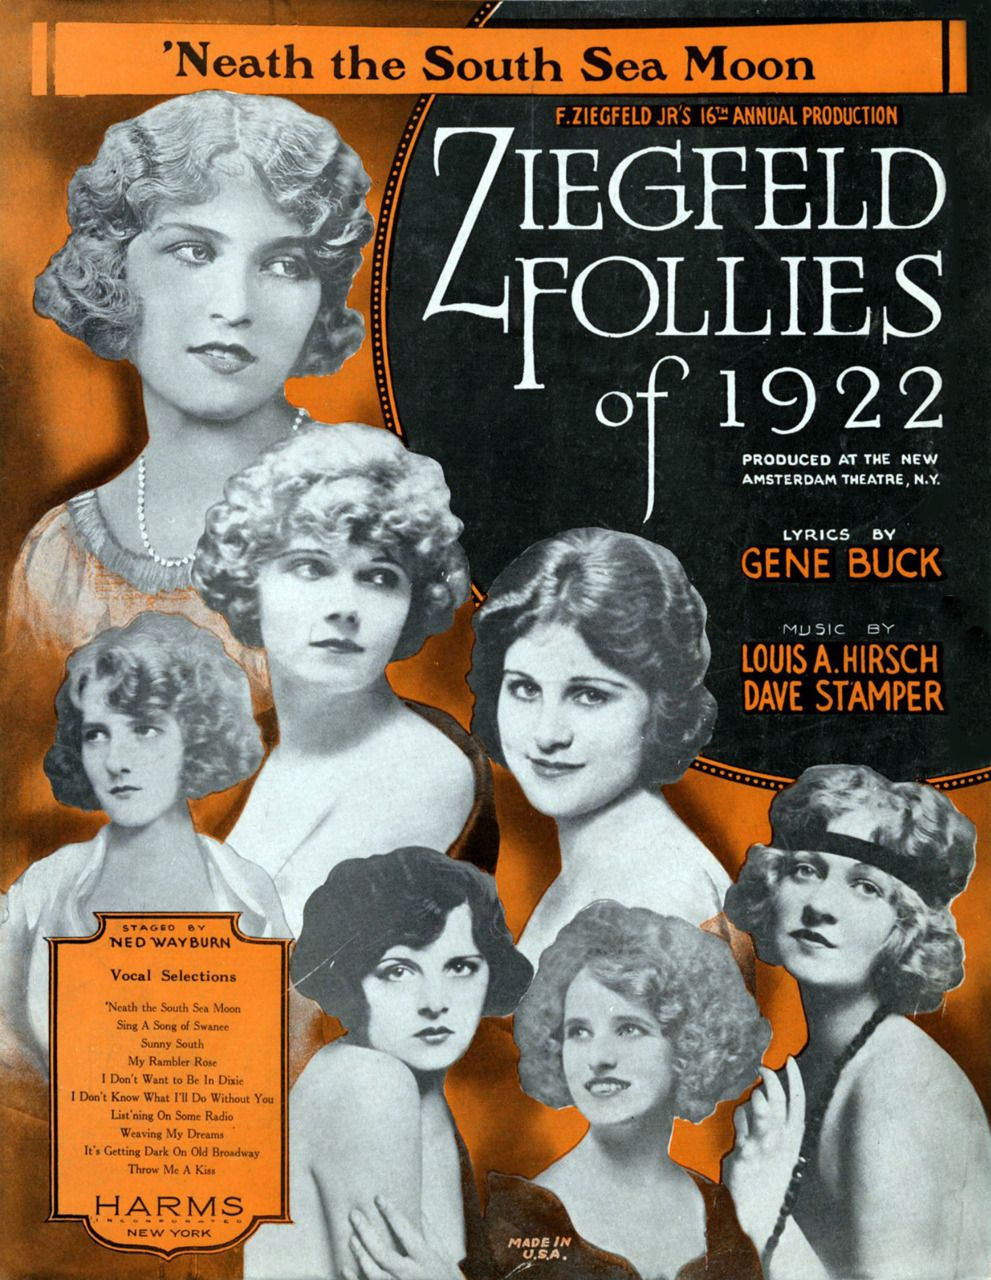 ZIEGFELD FOLLIES - Lou